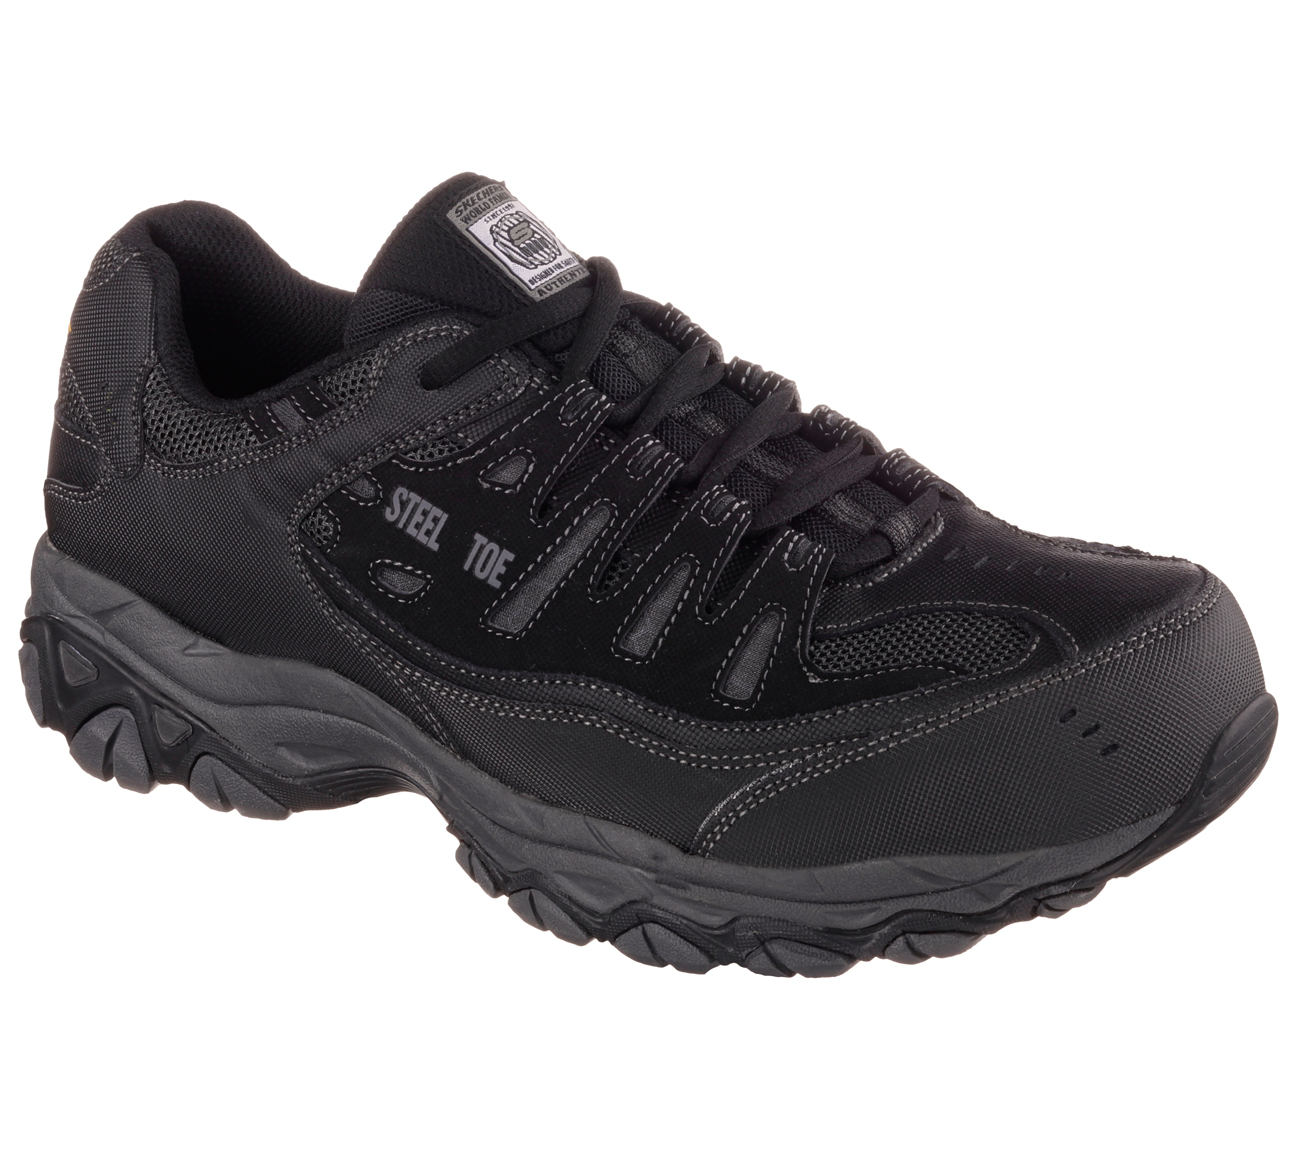 Buy Skechers Work Relaxed Fit Crankton St Safety Toe